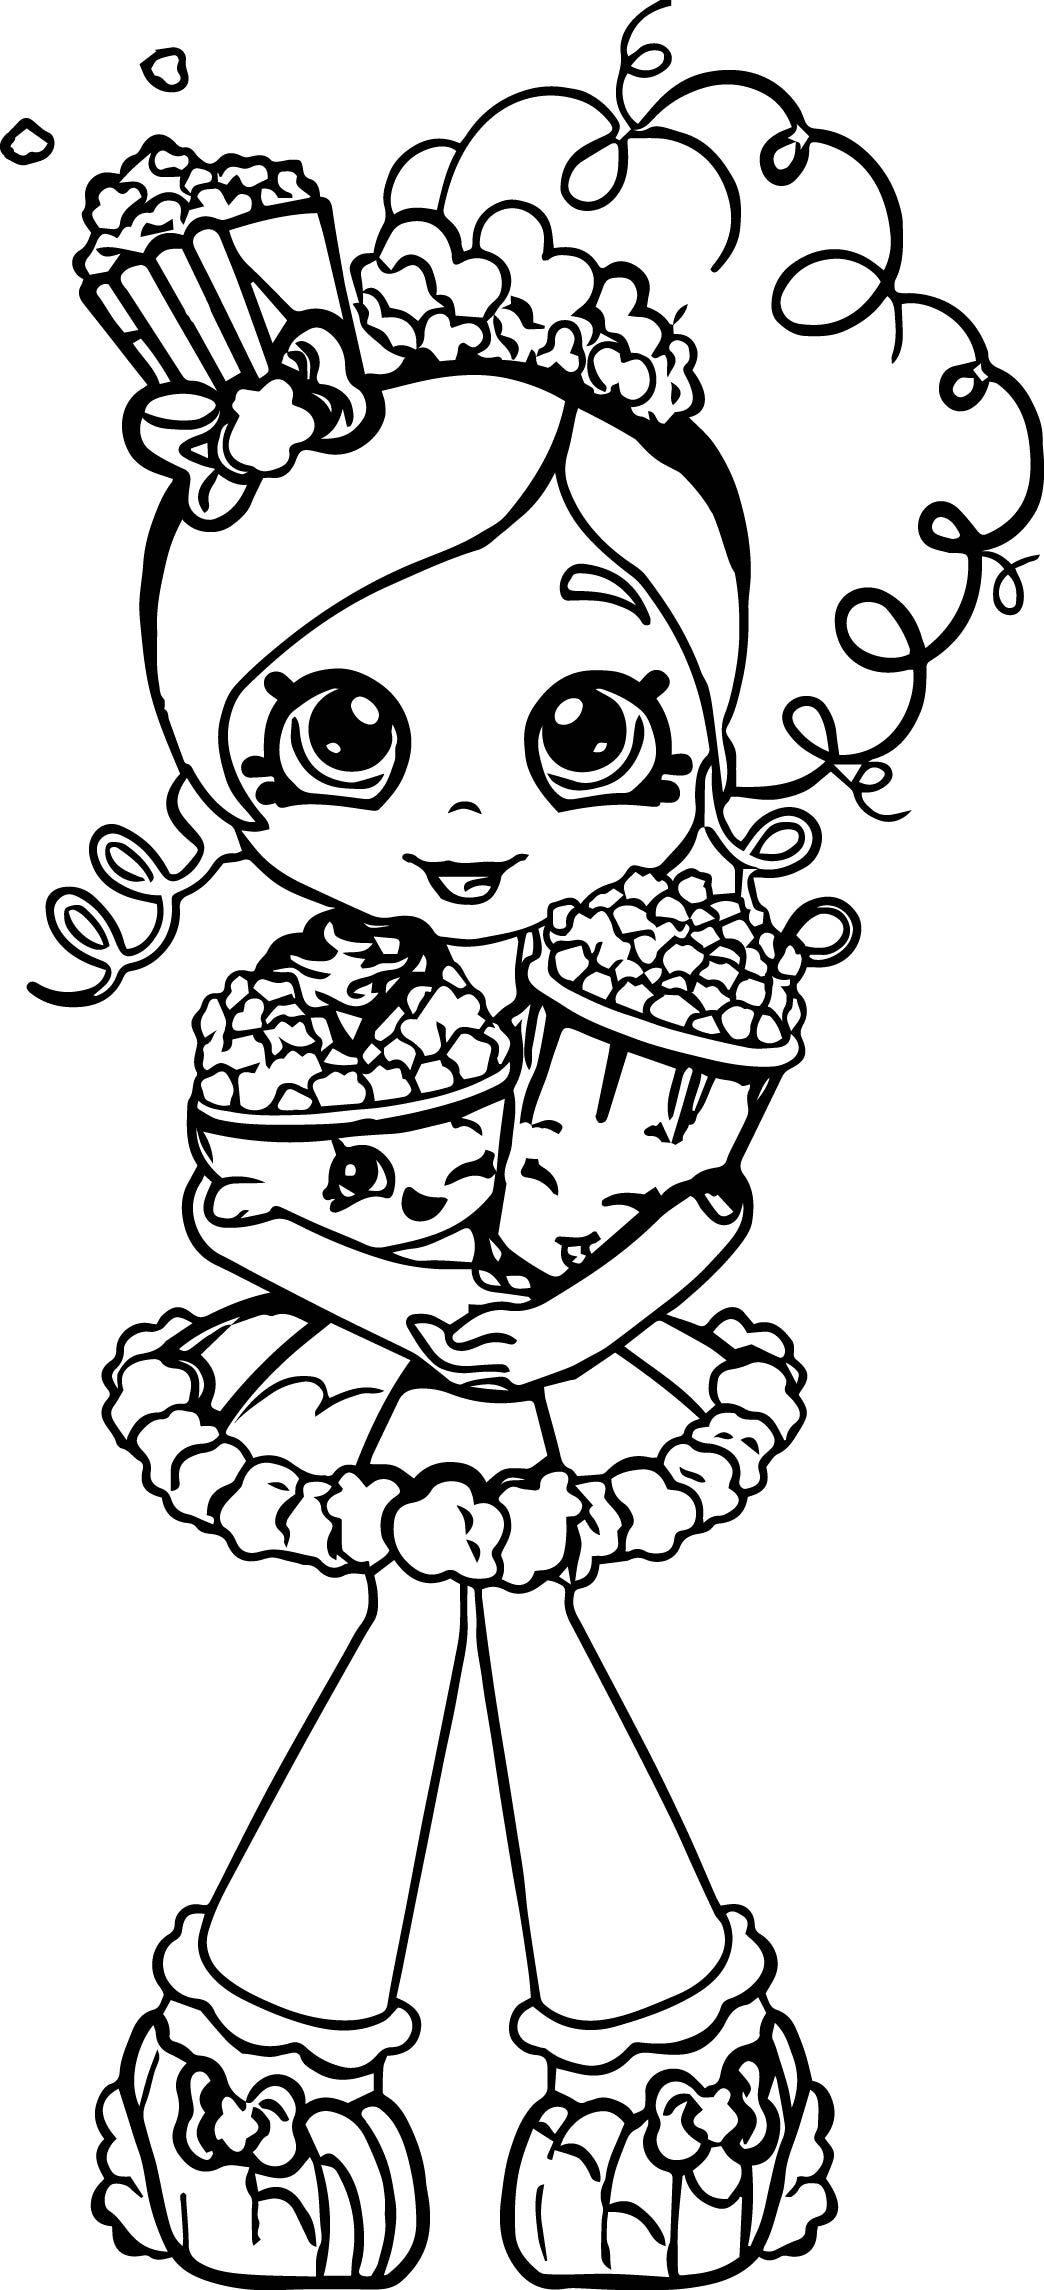 Shopkins color sheets - Shopkins Christmas Coloring Pages Popcorn Shopkins Girl Coloring Page